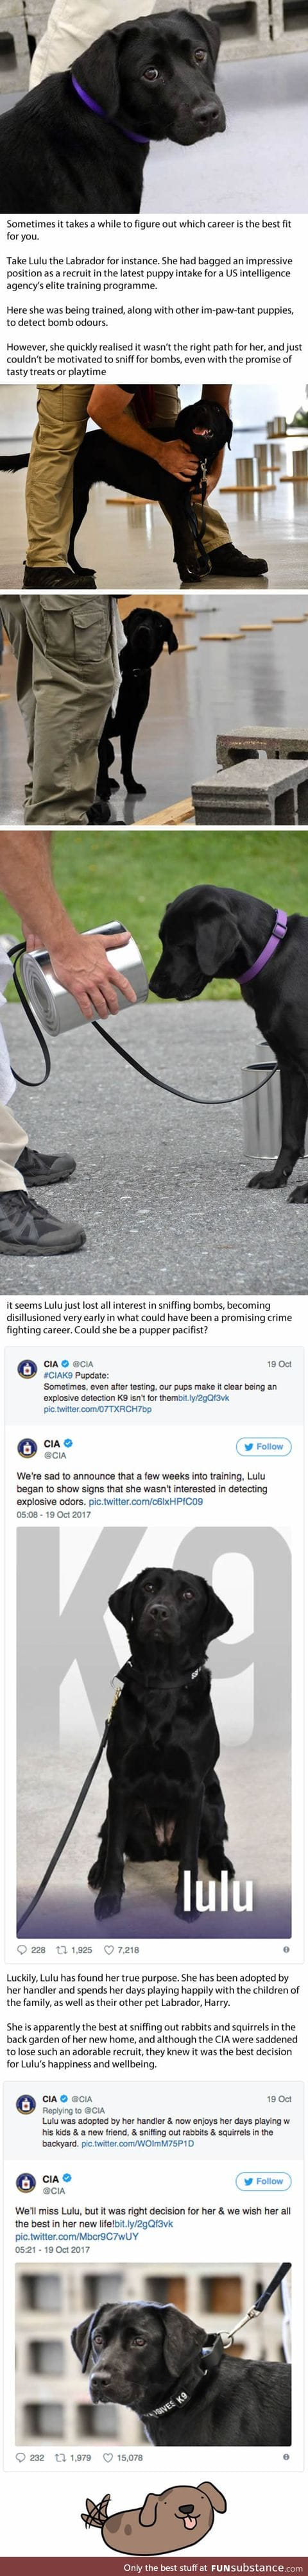 Dog Got Fired From CIA Because Sniffing Bombs Just Wasn't Her Thing